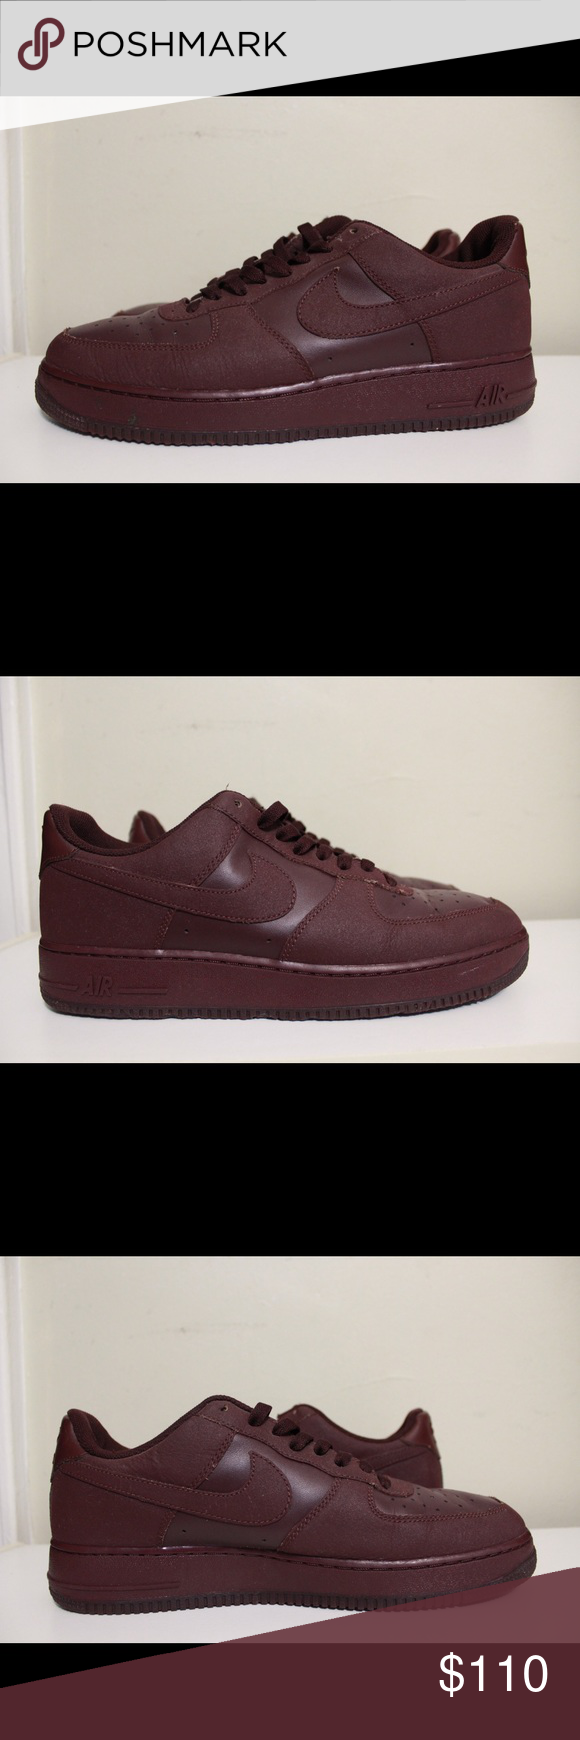 21a7f0df322264 Nike AF1 Tec Tuff Burgundy 2011 Sneakers size 11.5 Nike Air Force 1 Low Tec  Tuff Deep Burgundy 2011 Basketball Sneakers Size 11.5 Good condition but  has ...